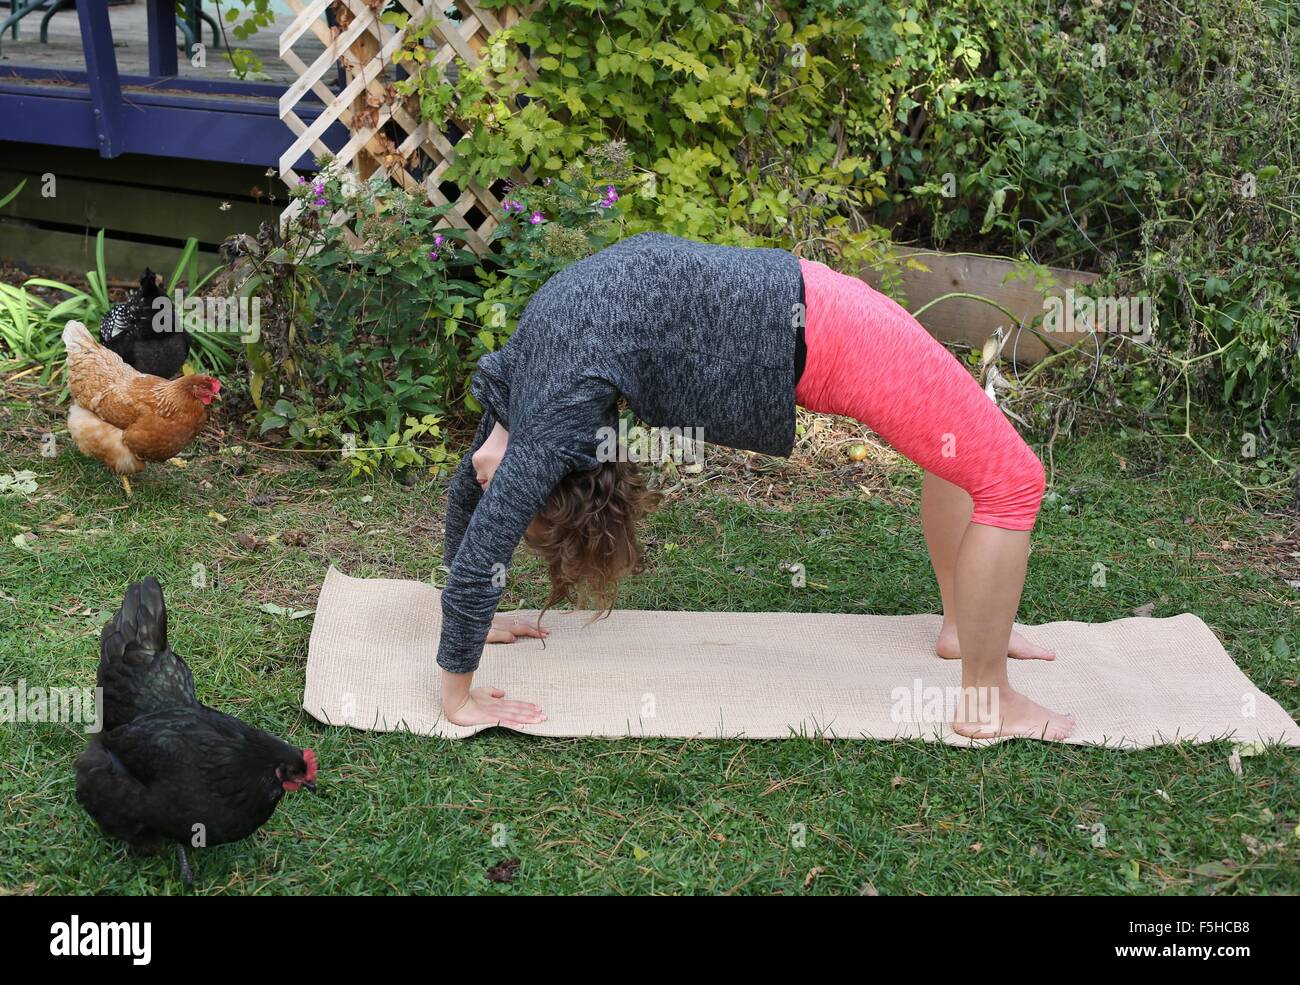 A woman doing yoga outdoors with chickens nearby. Stock Photo